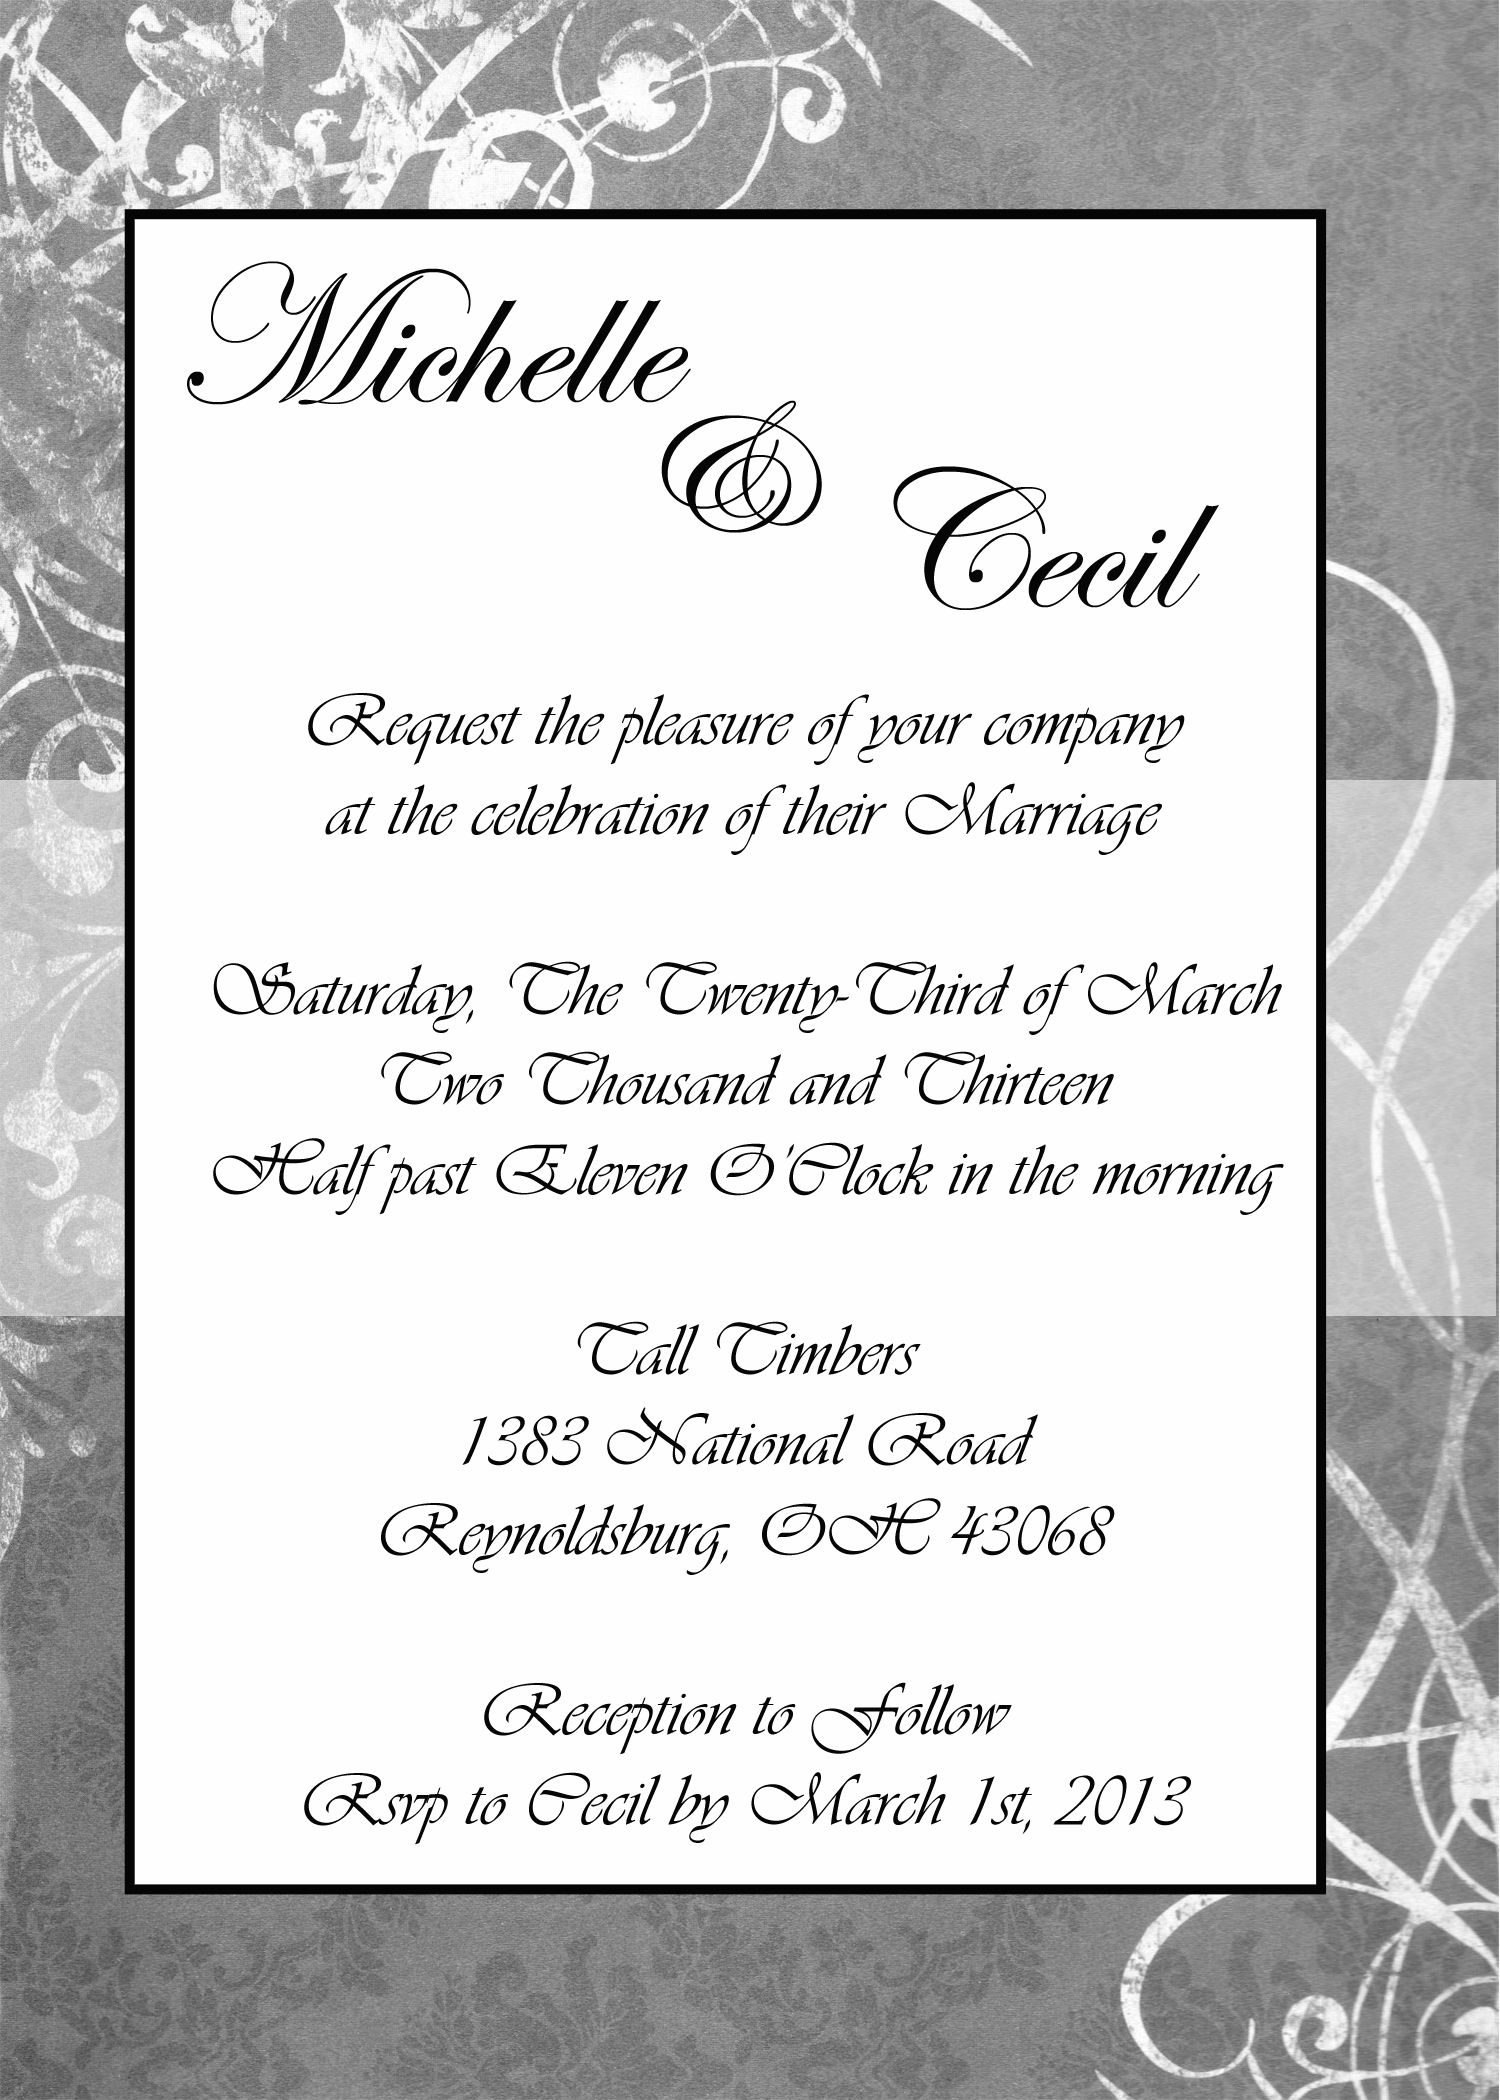 Jennifer Marshbank Photography and Design does invitations as well ...